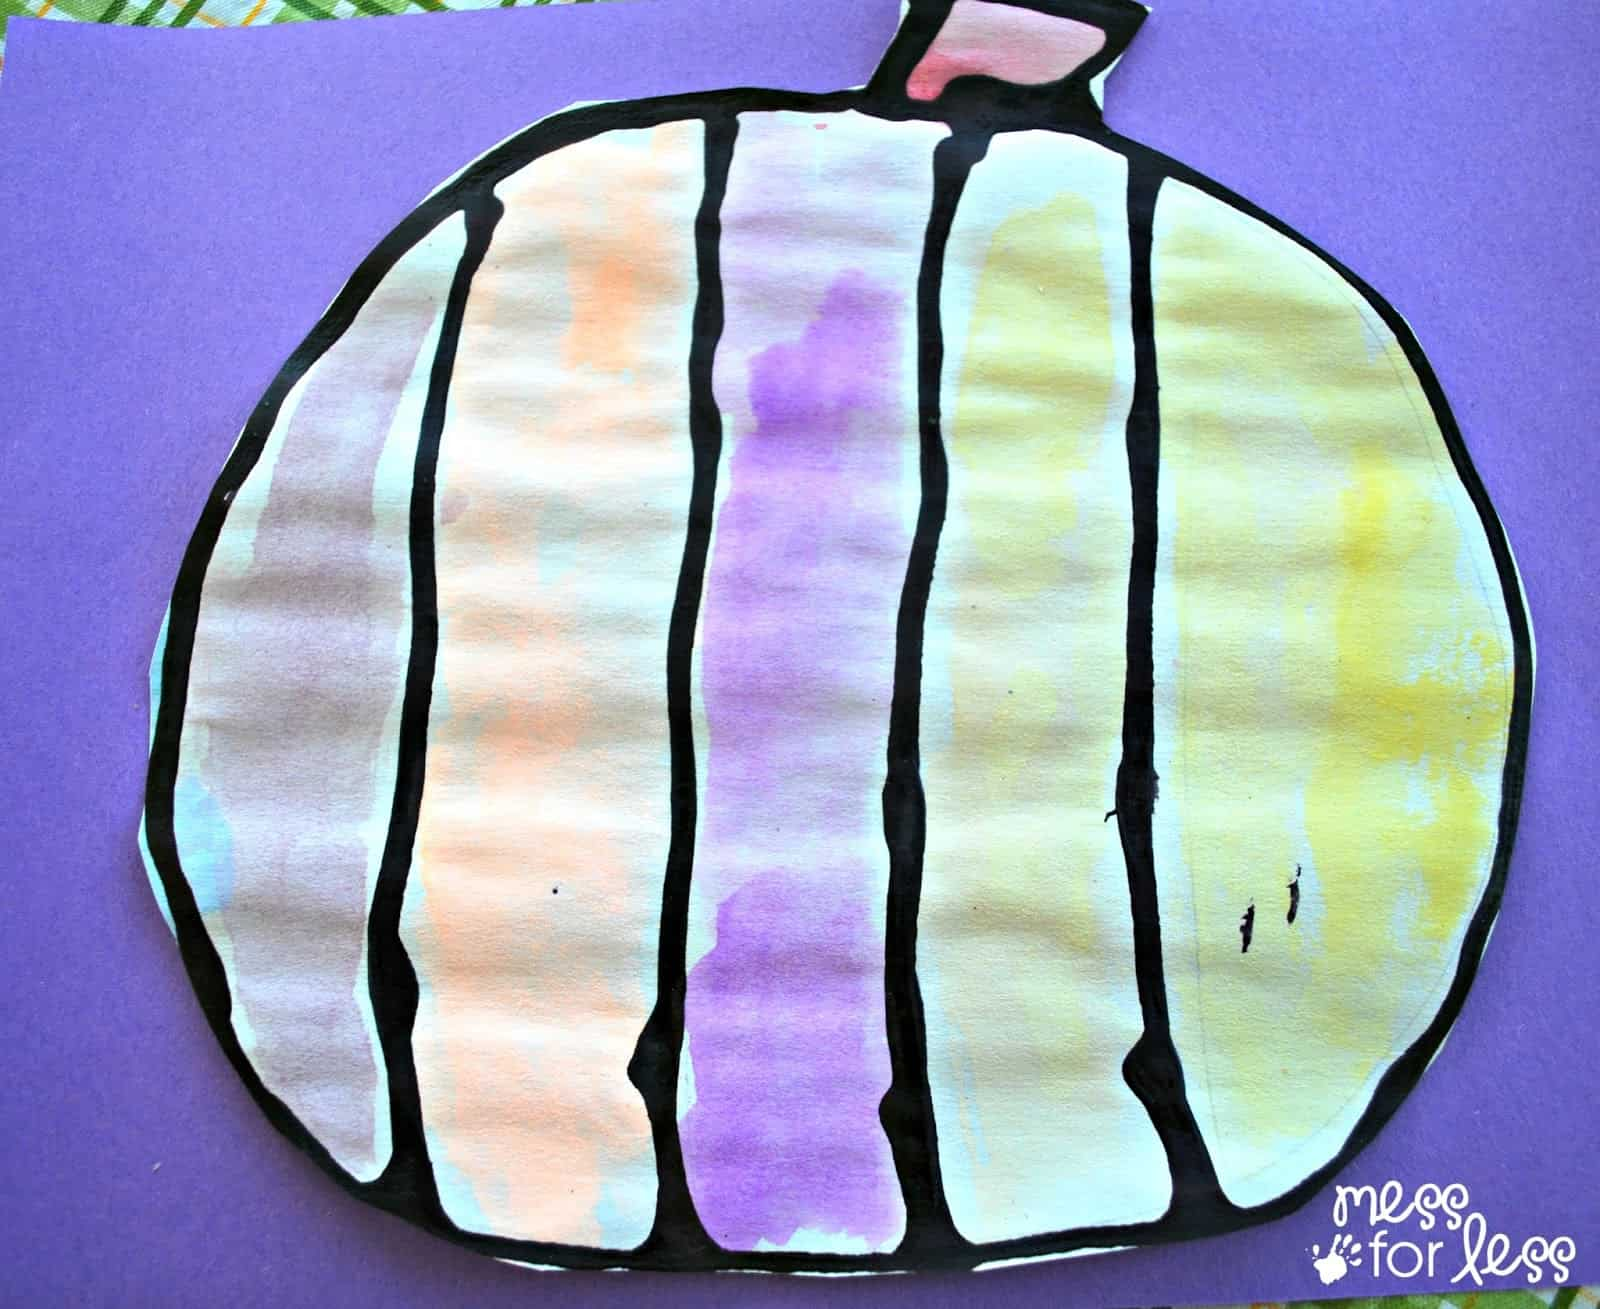 Halloween Crafts For Kids Black Glue And Watercolor